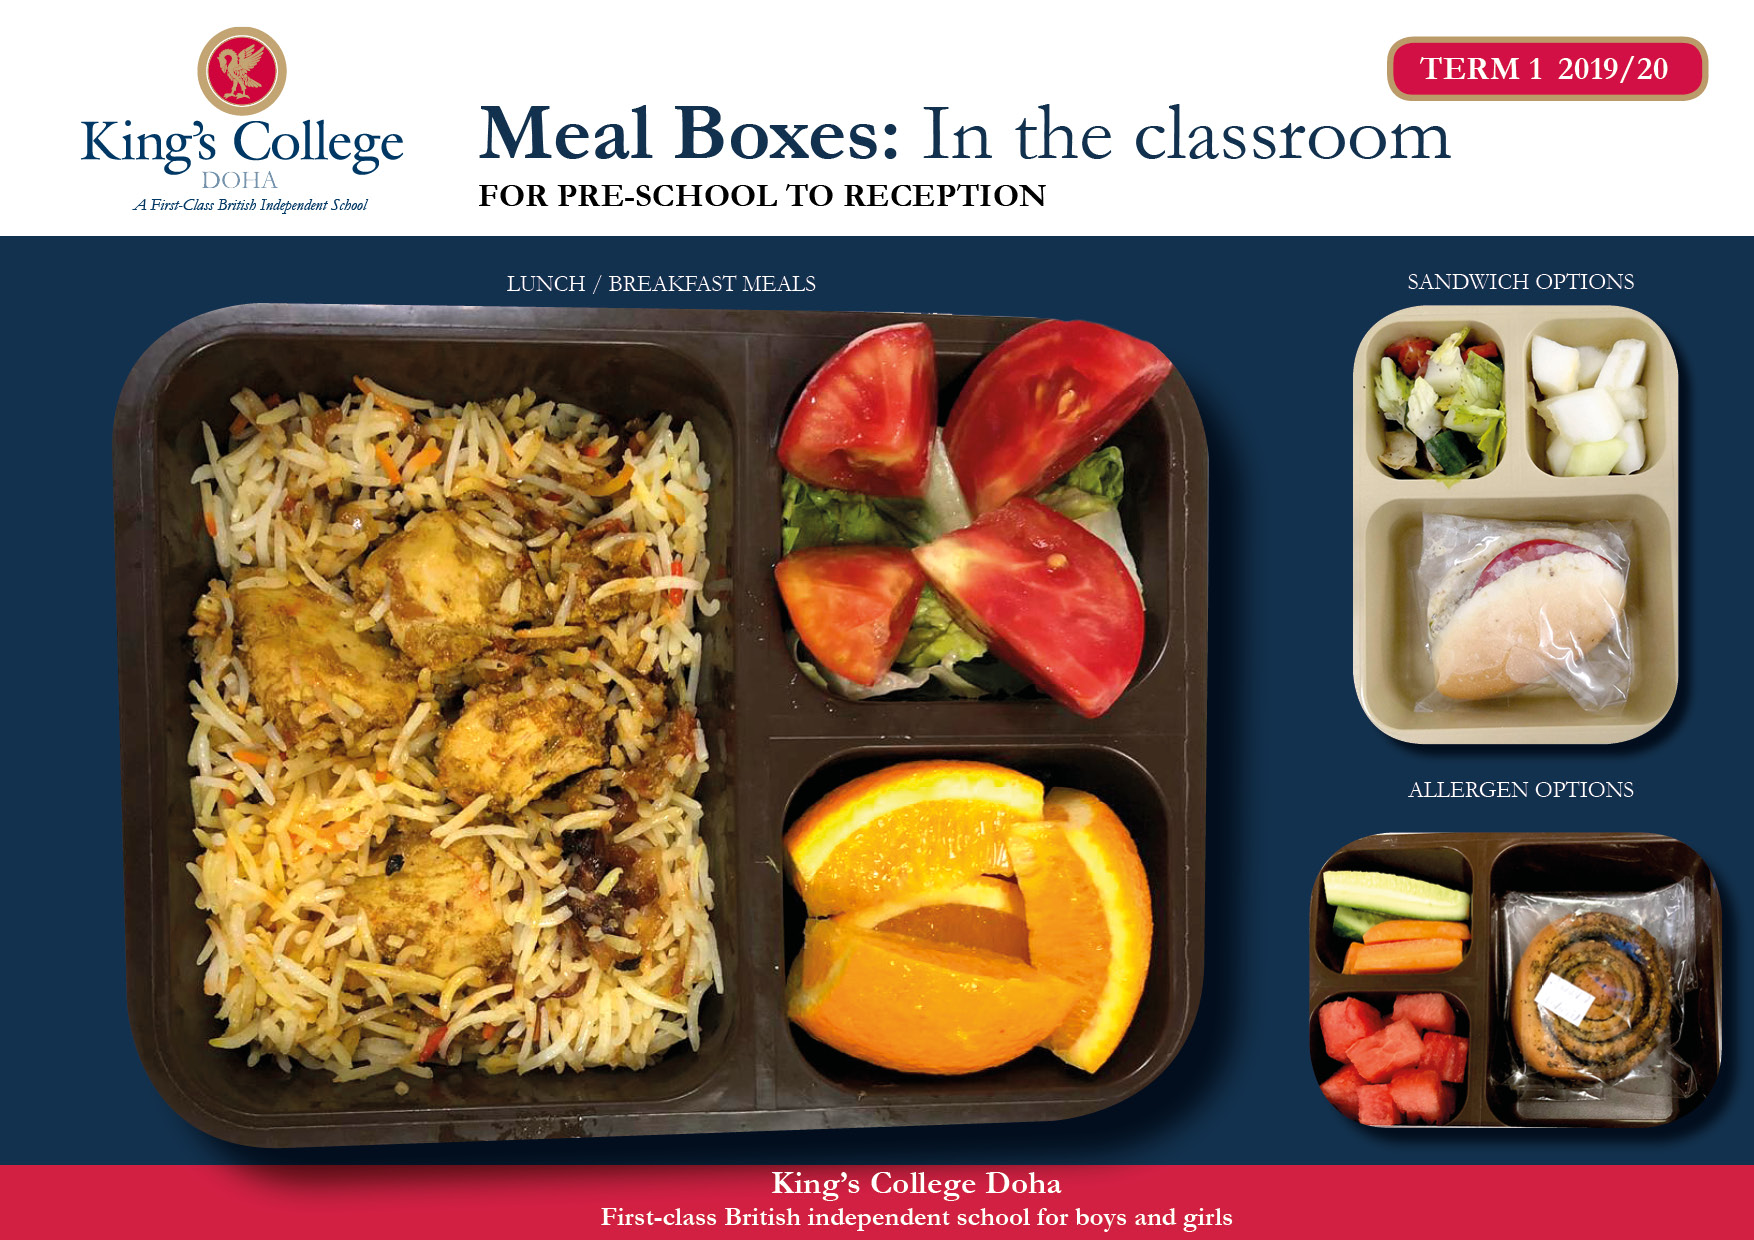 Kings College Food menu - Catering